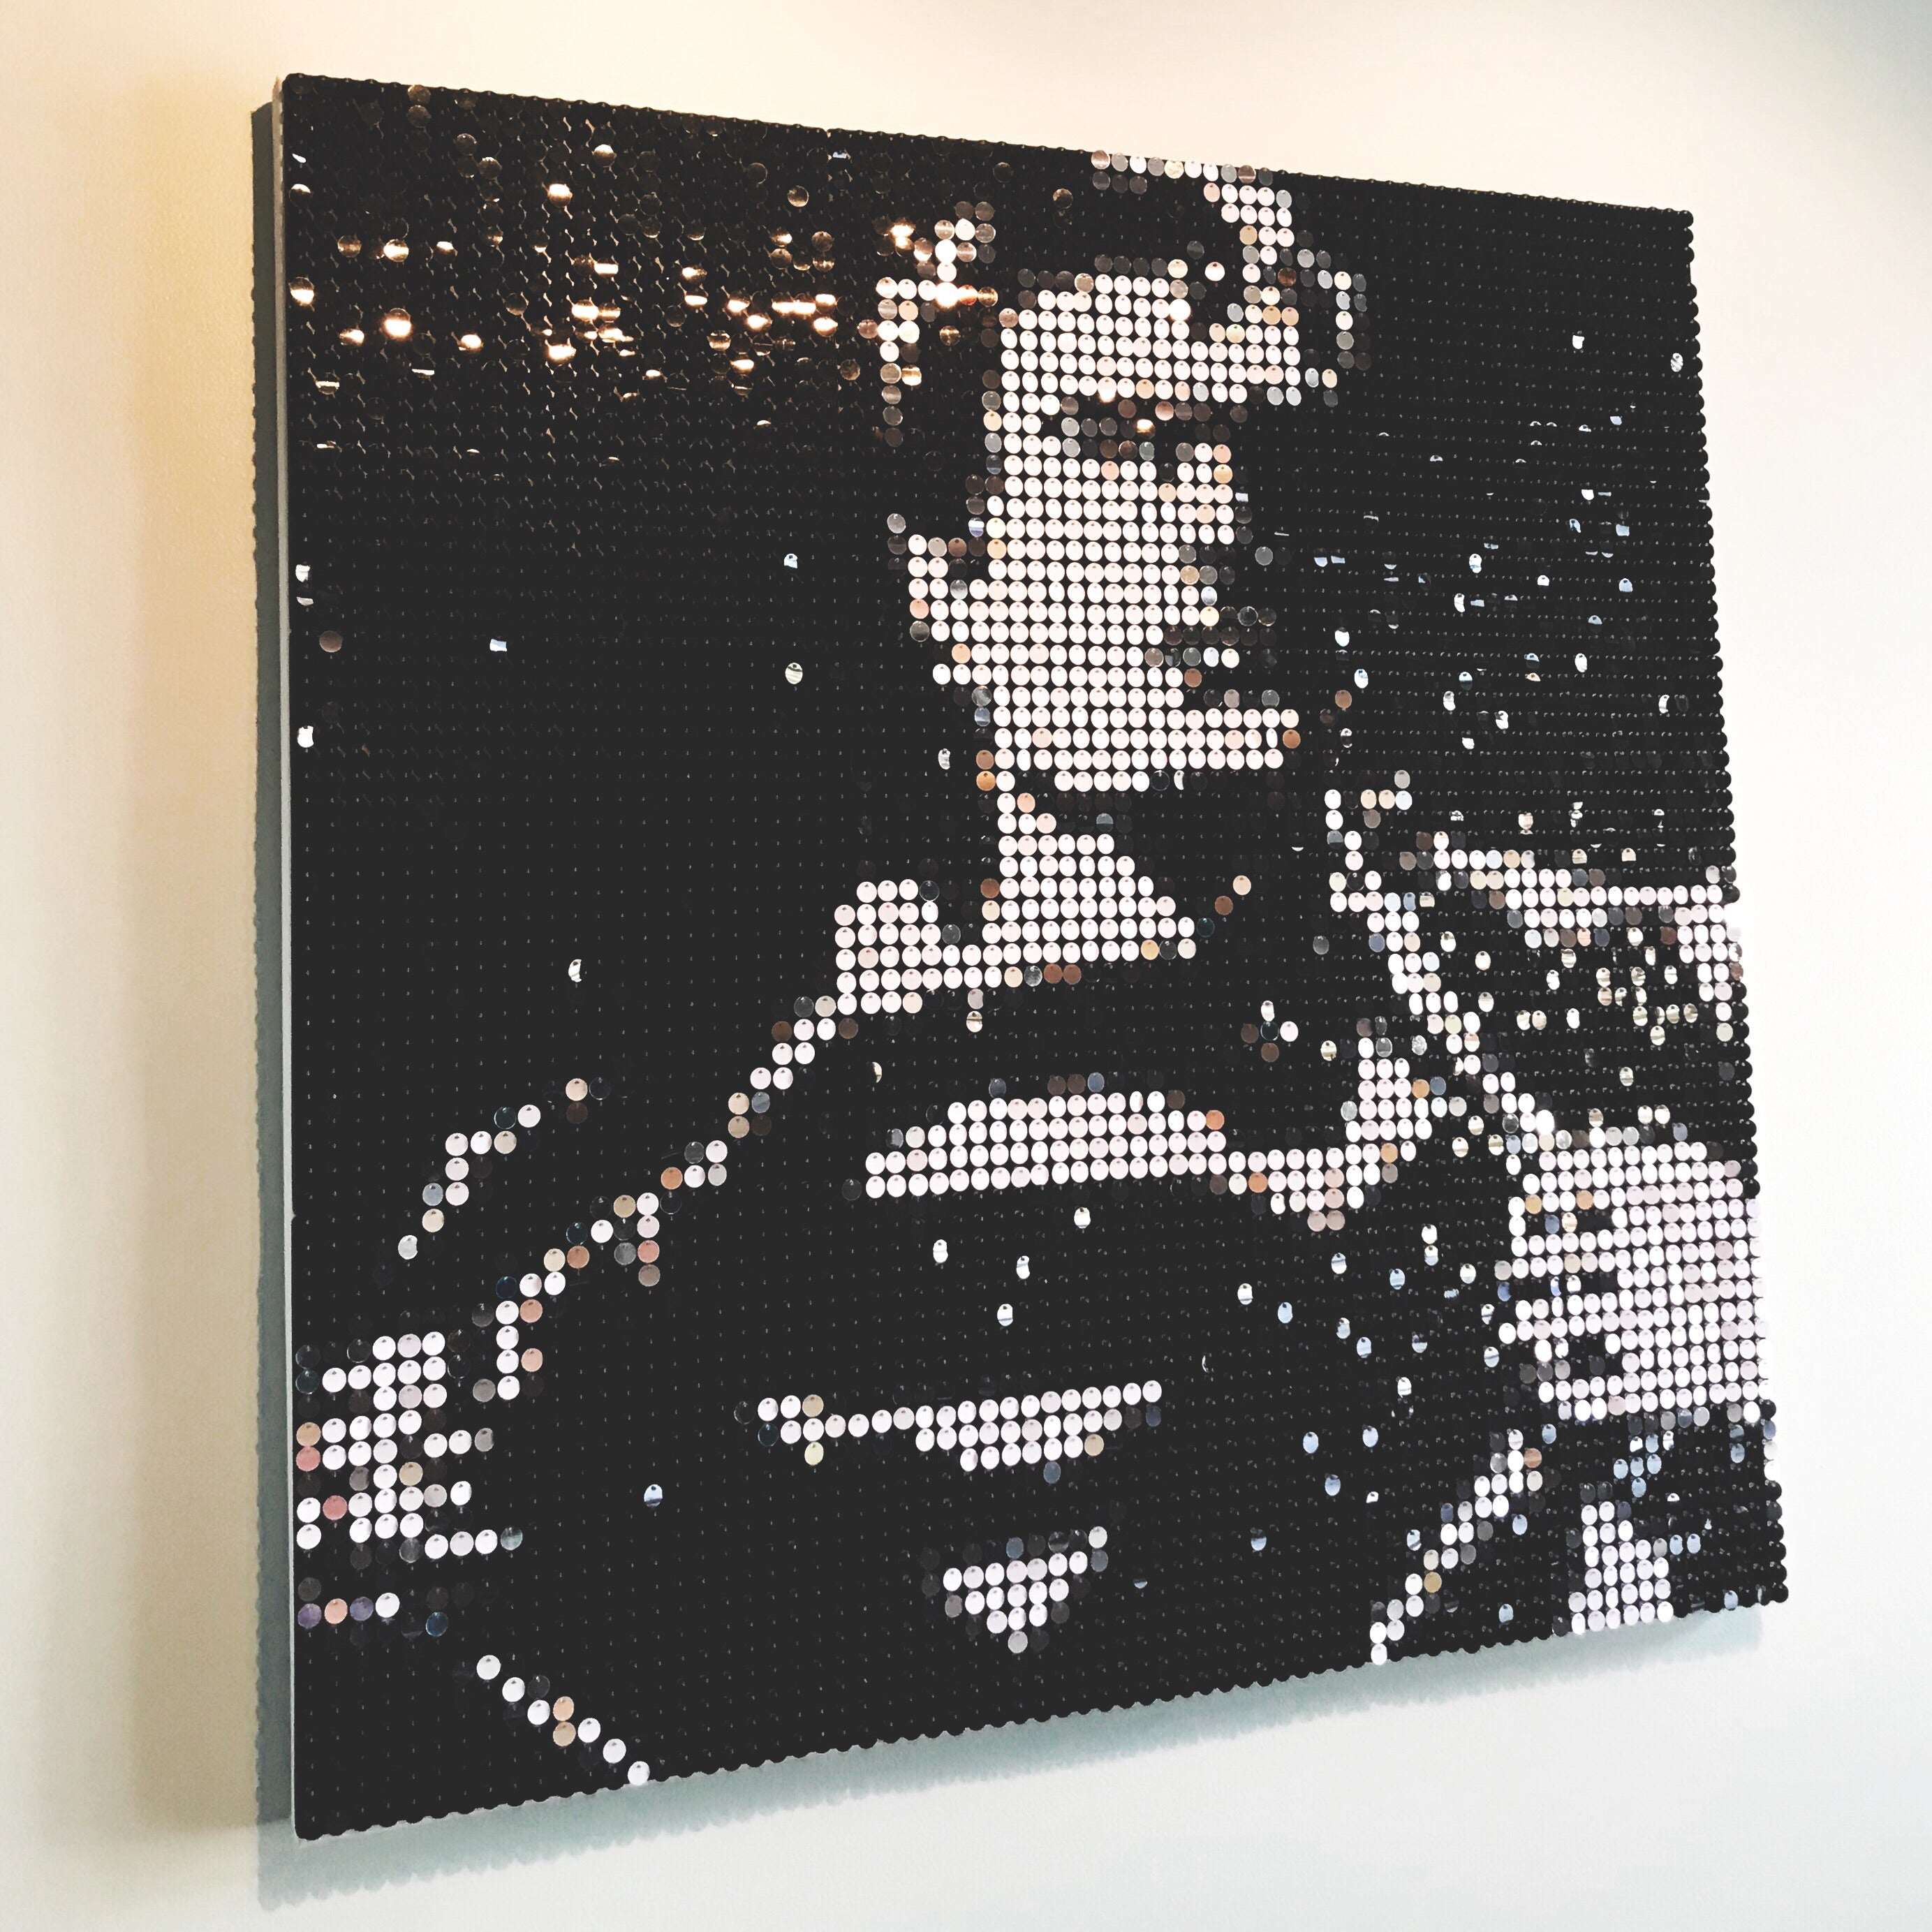 Superman Pixel Art by Pix Perfect